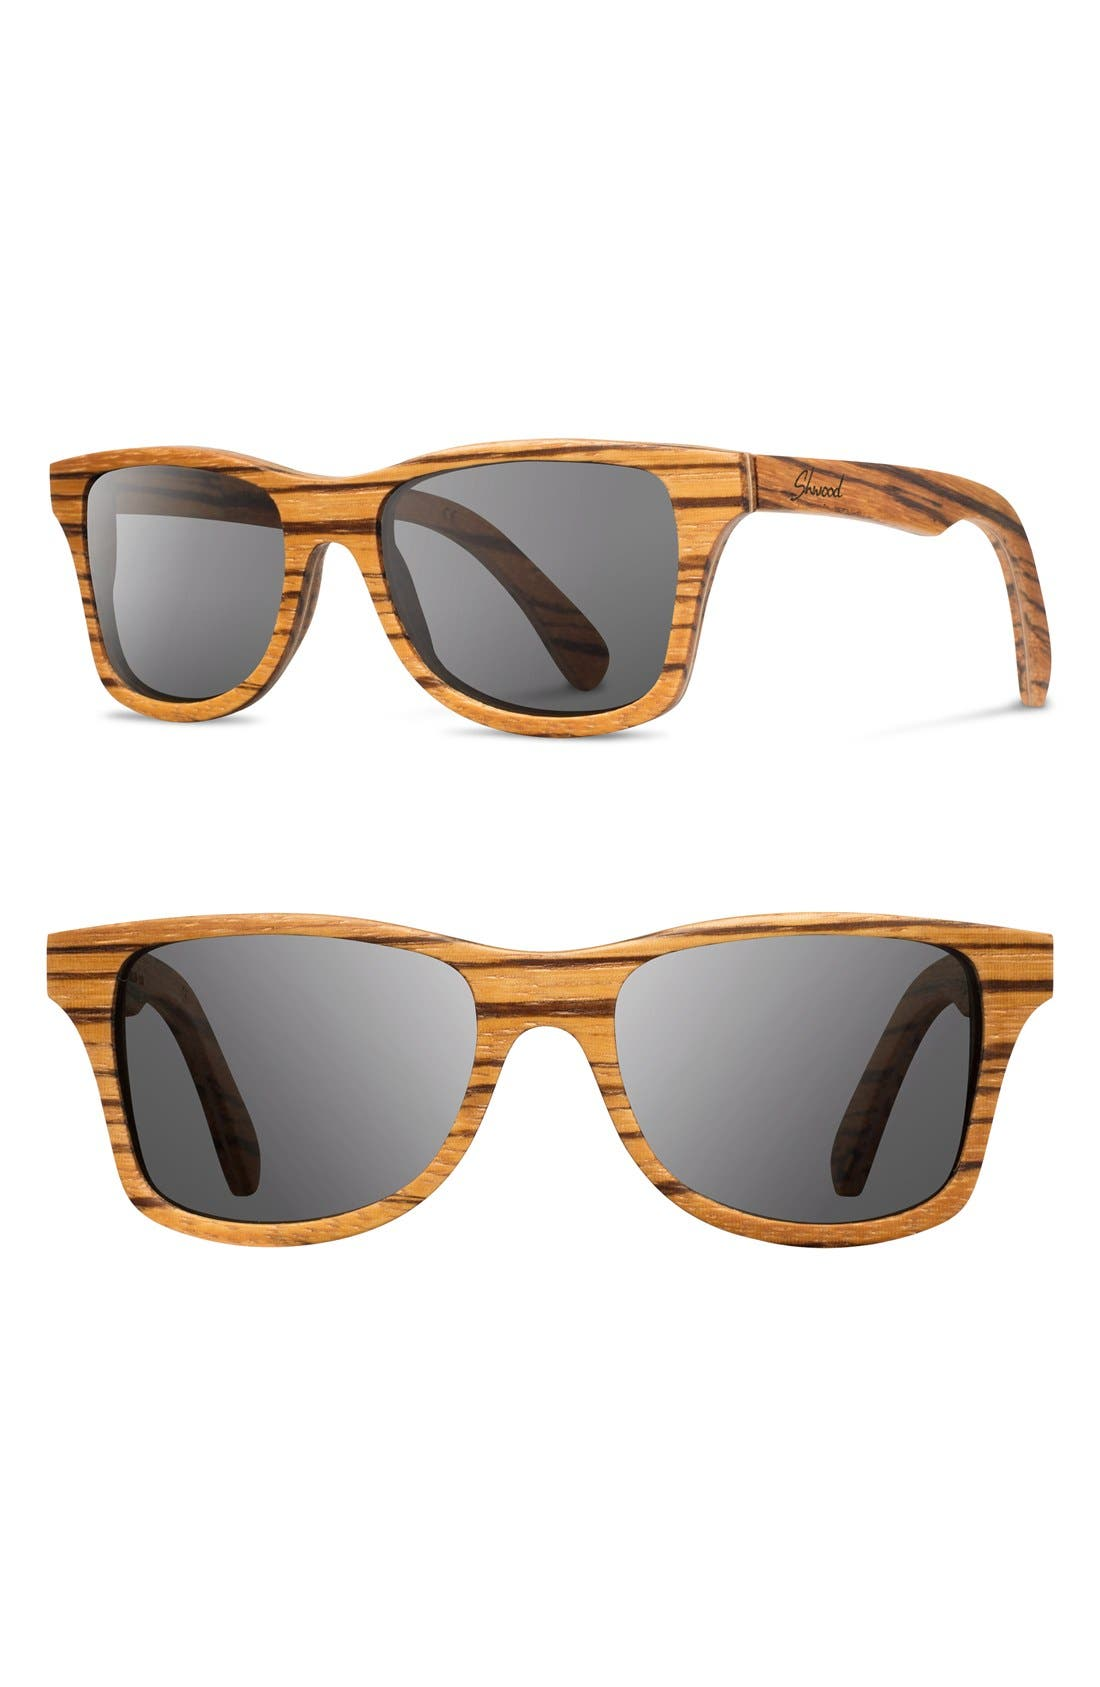 'Canby' 54mm Polarized Wood Sunglasses,                         Main,                         color, Zebrawood/ Grey